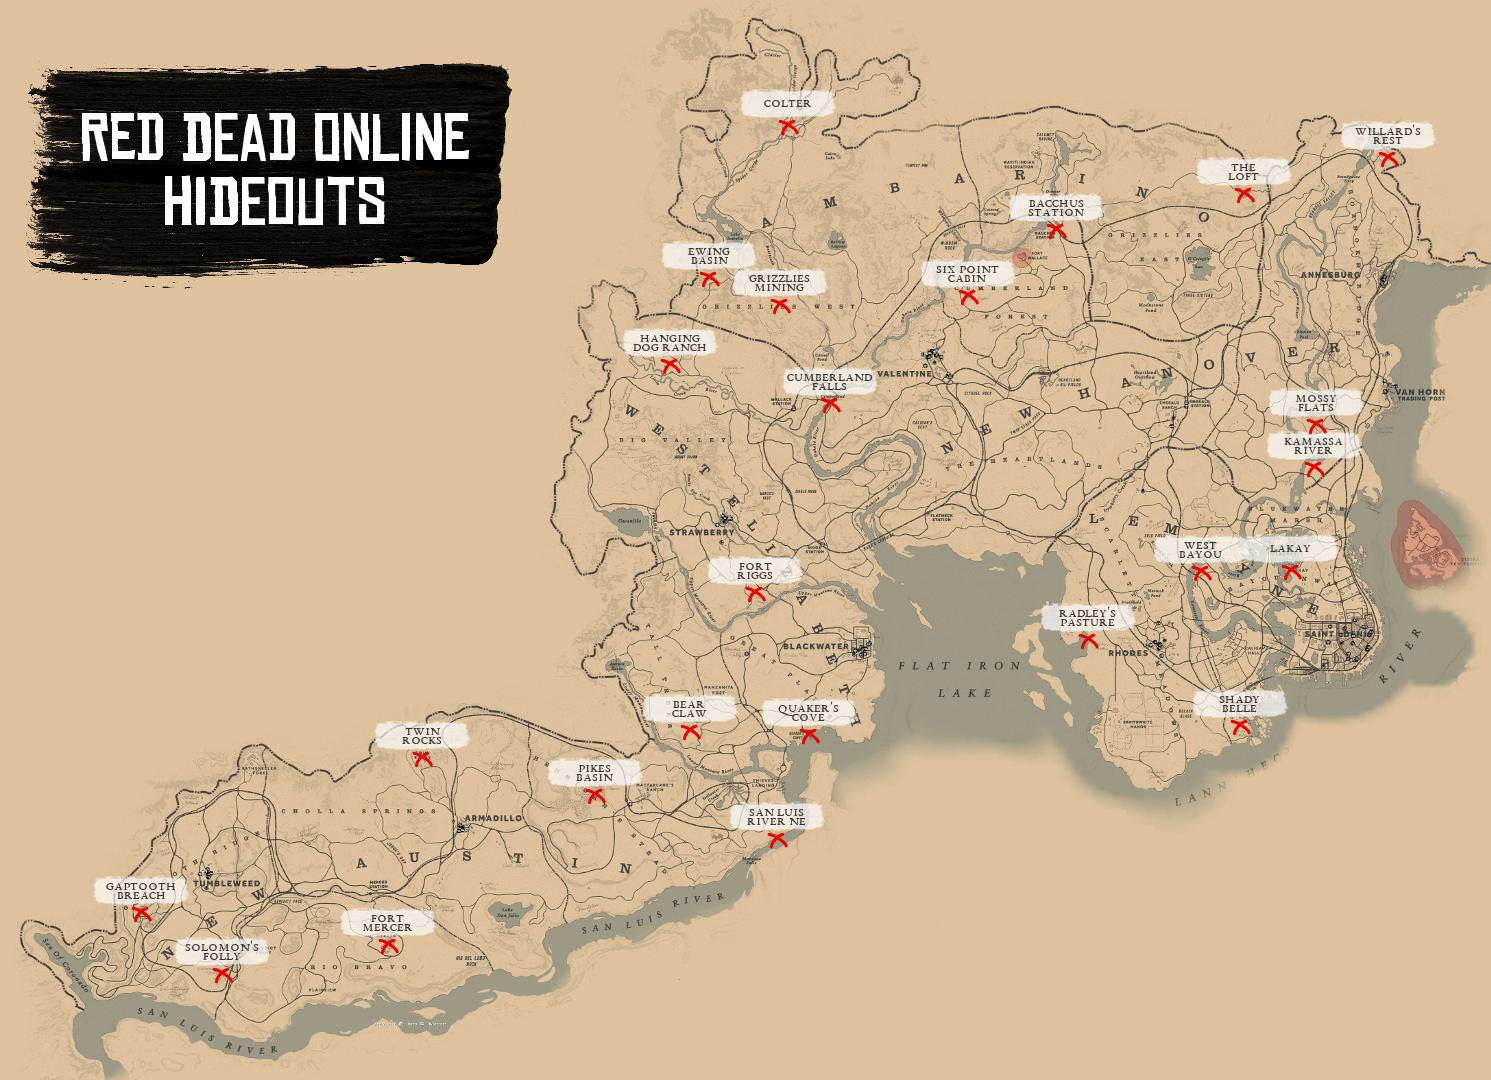 Red Dead 2 World Map.Red Dead Online Guide All Red Dead Online Hideouts Location World Map